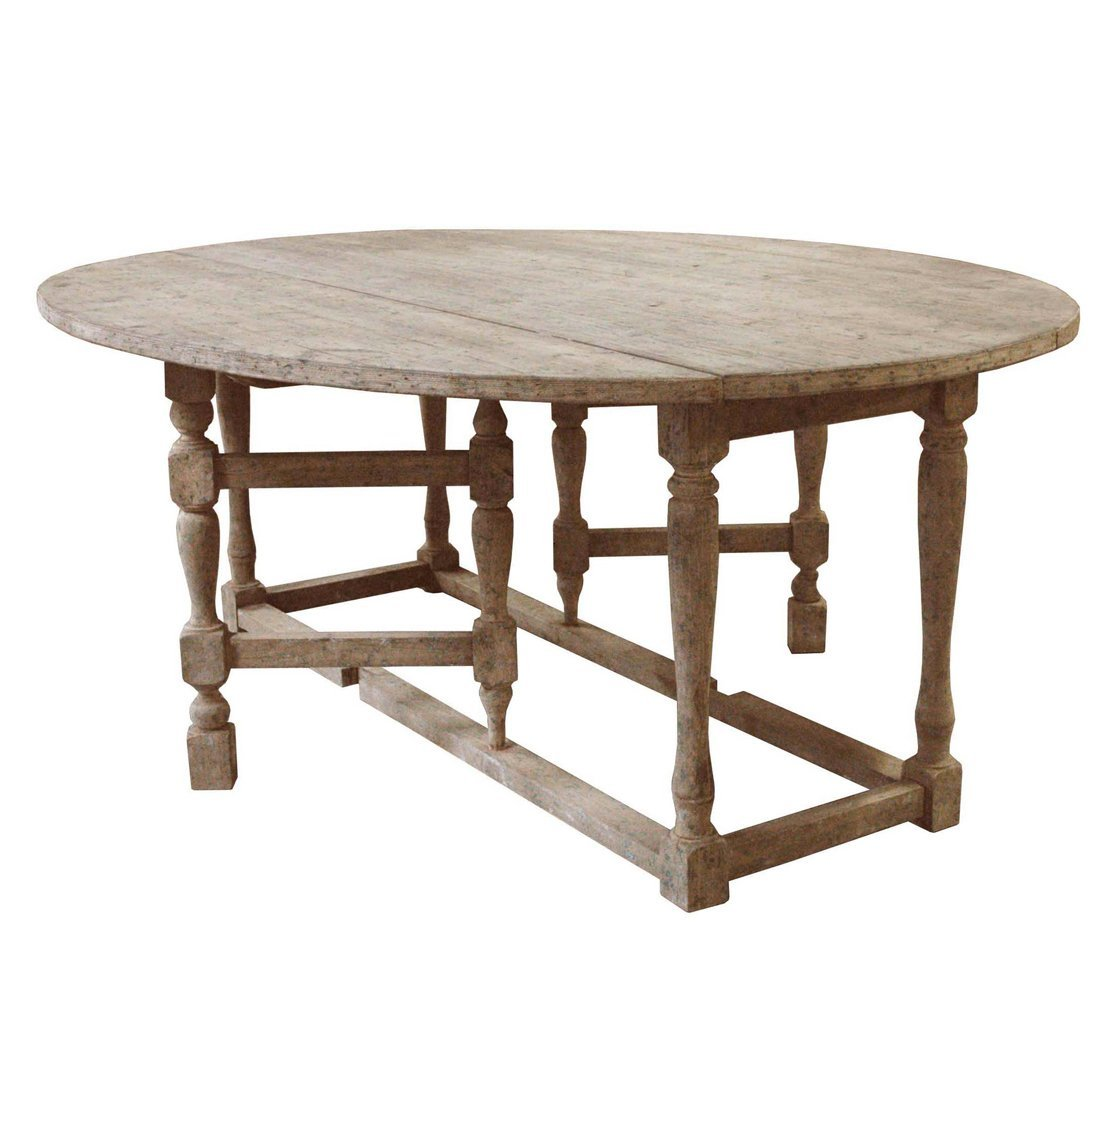 High Quality Amazon.com   Swedish Gustavian Grey Oval Gate Leg Drop Leaf Dining Table    Tables